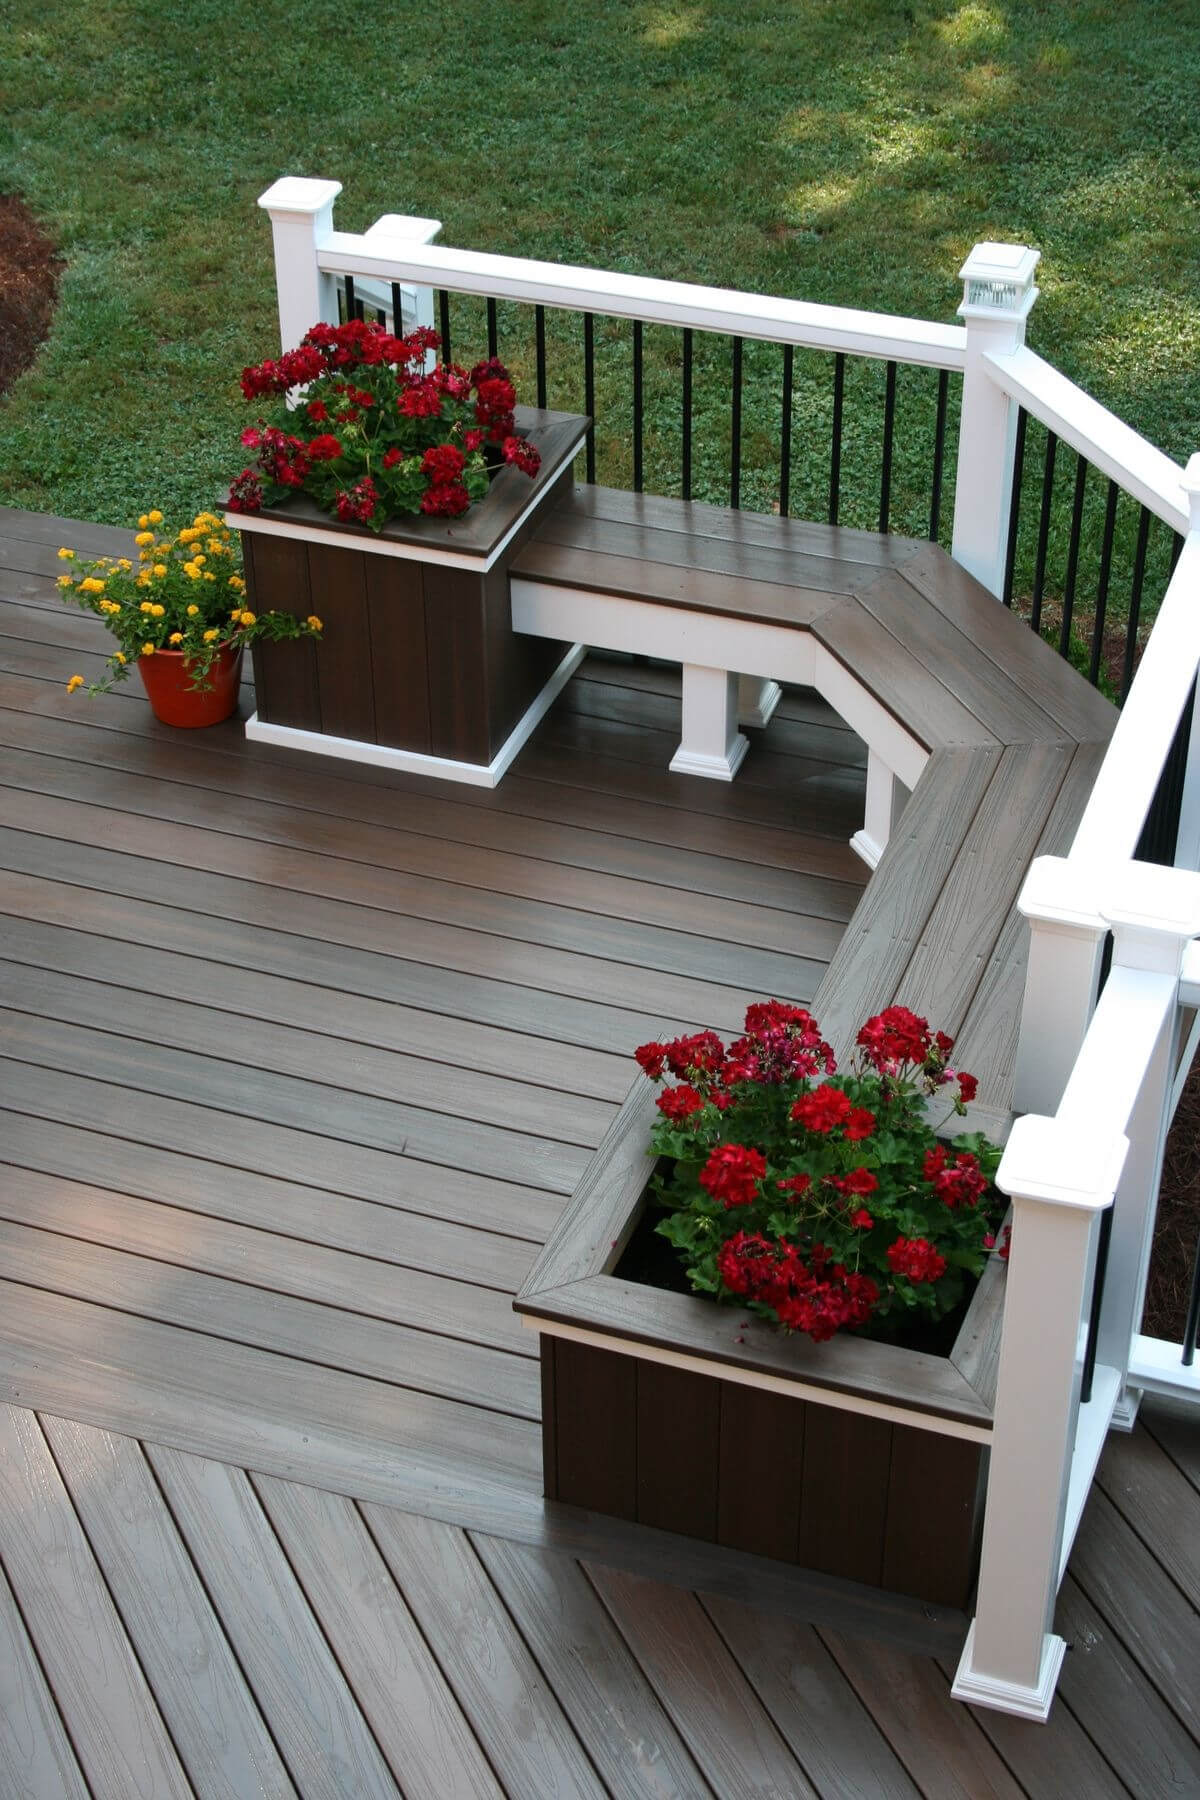 Deck Bench With Built In Planters